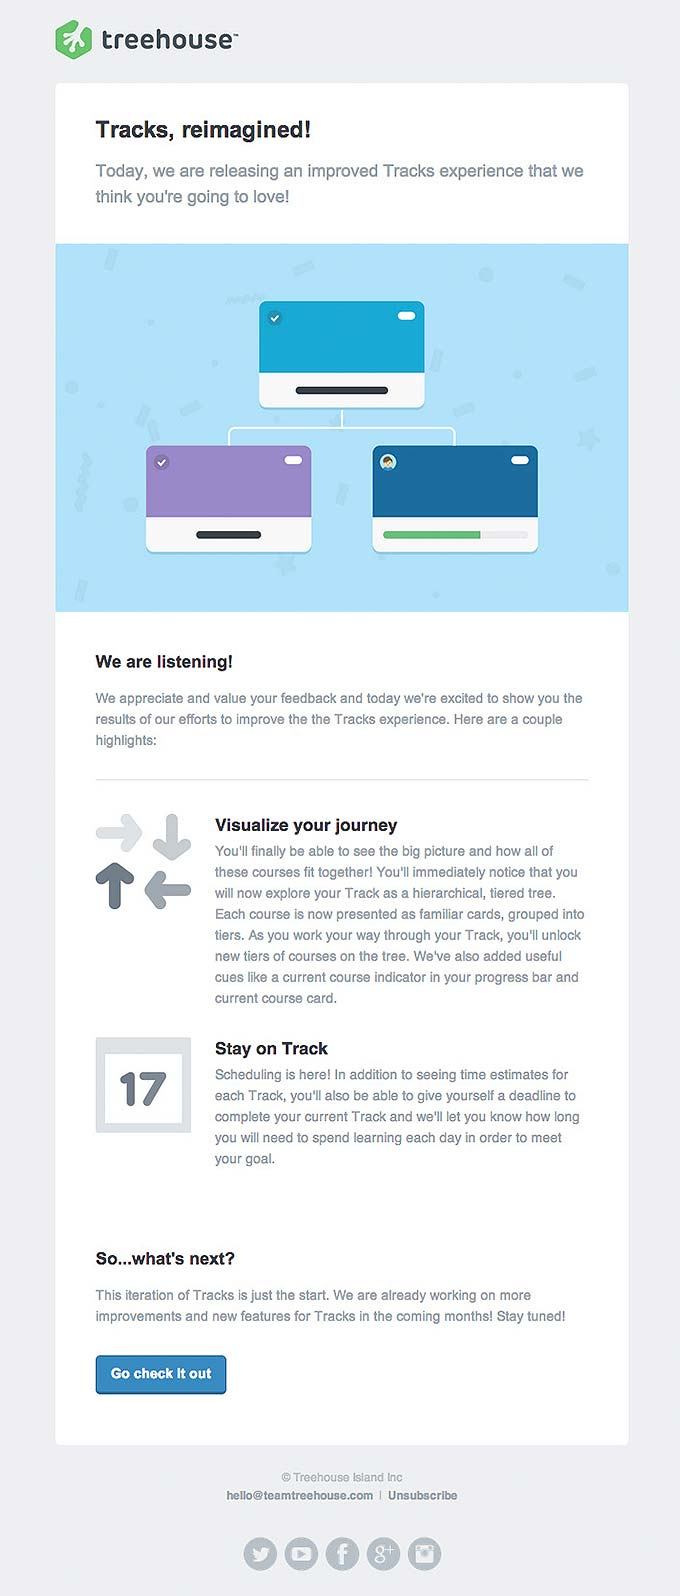 Product Update Email Design from Treehouse